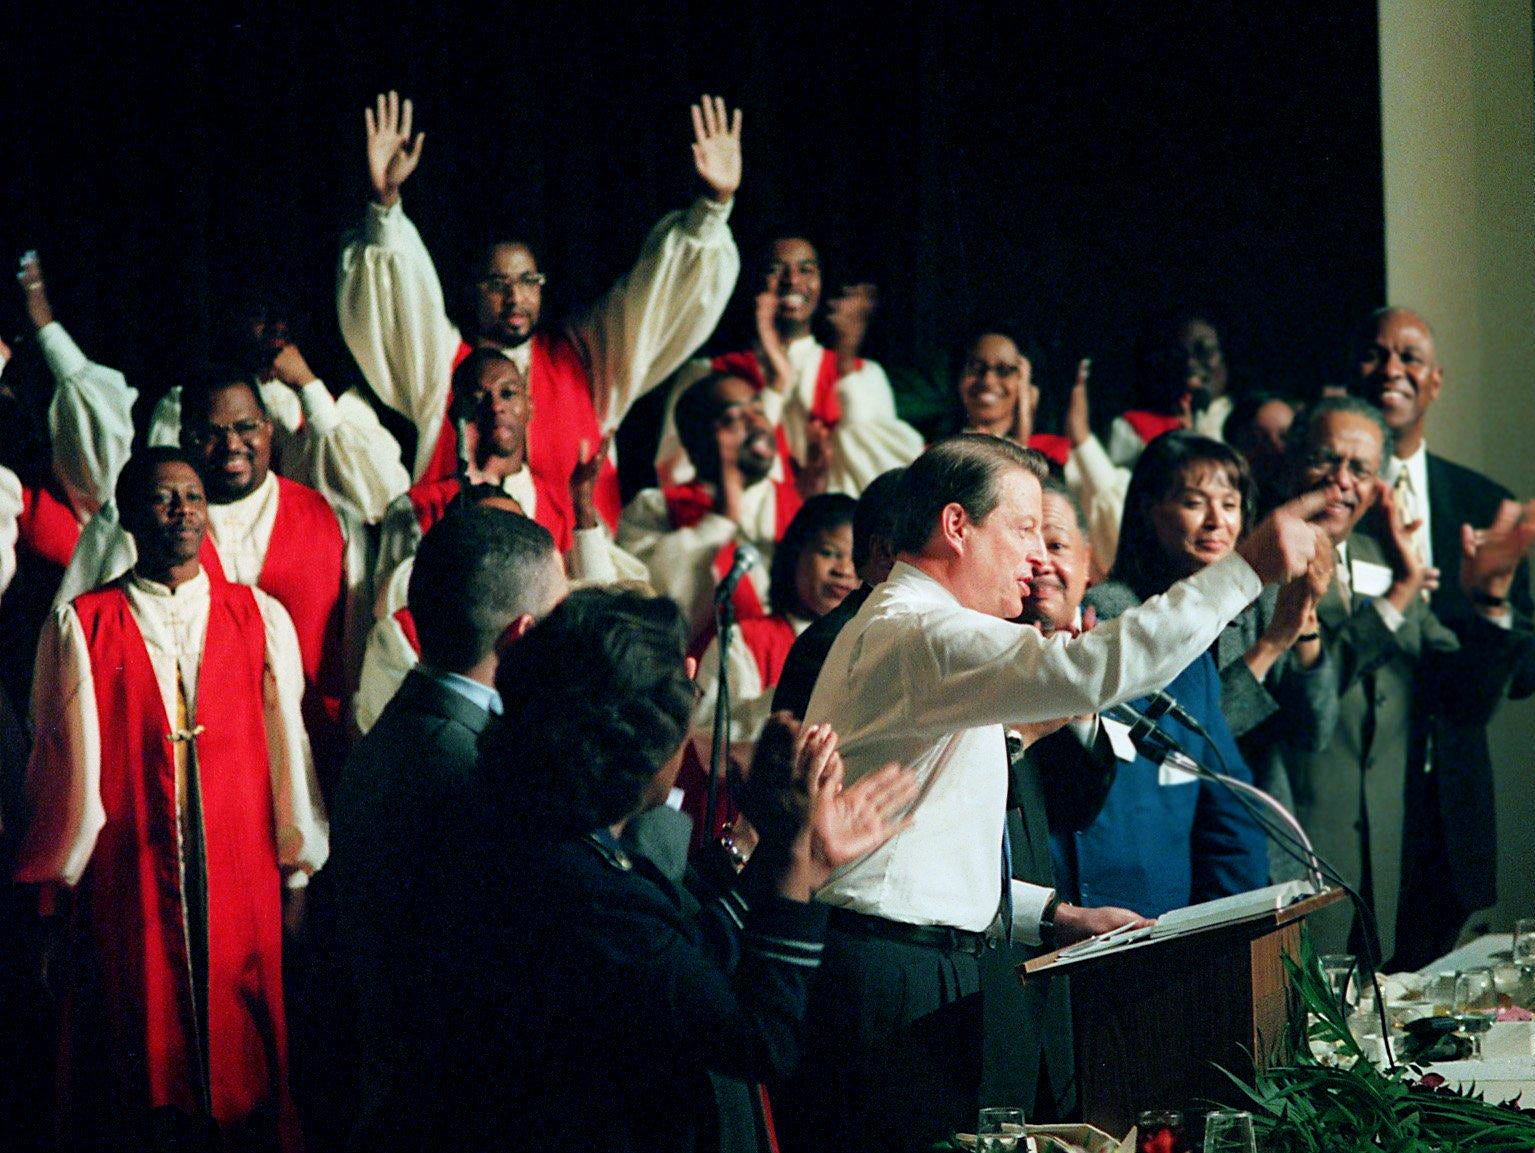 Al Gore, center, addresses a crowd during the Tennessee Democratic Victory Interfaith Prayer Breakfast at the Peabody Hotel in Memphis on Nov. 4, 2001. Flanking Gore at the event are, among others, his wife Tipper, Rep. Harold Ford, Jr., D-Tenn., and Martin Luther King III.